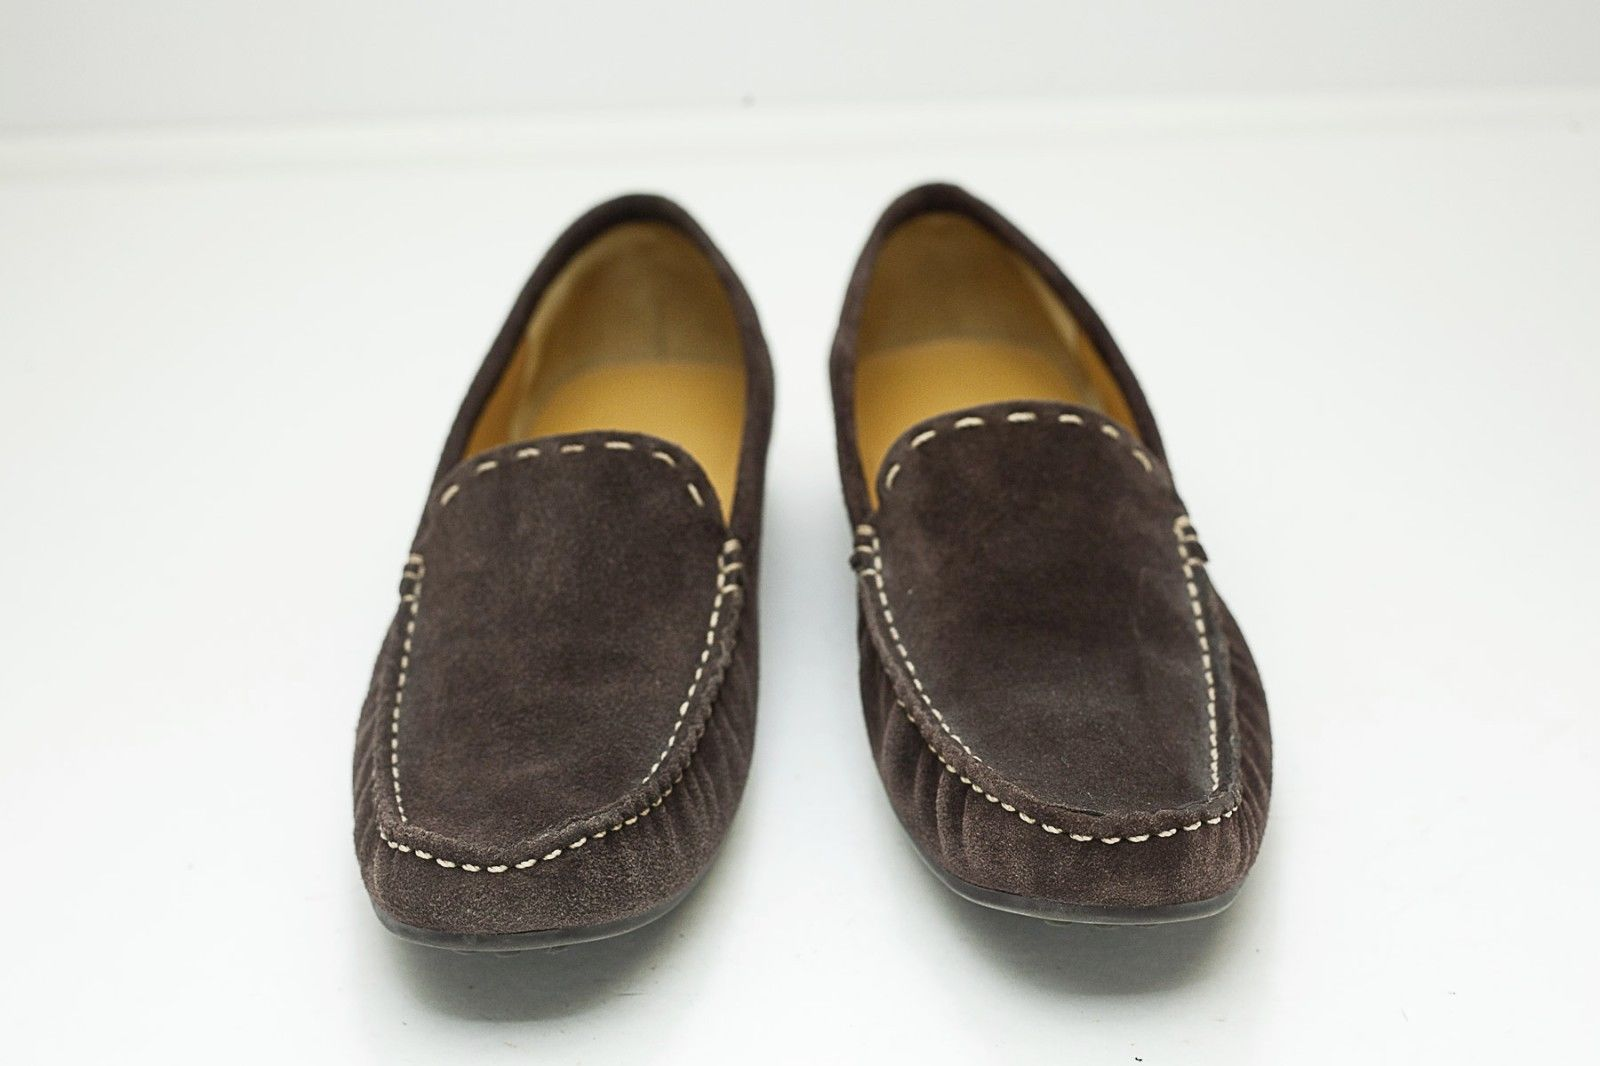 Talbots 8.5 Brown Loafer Flats